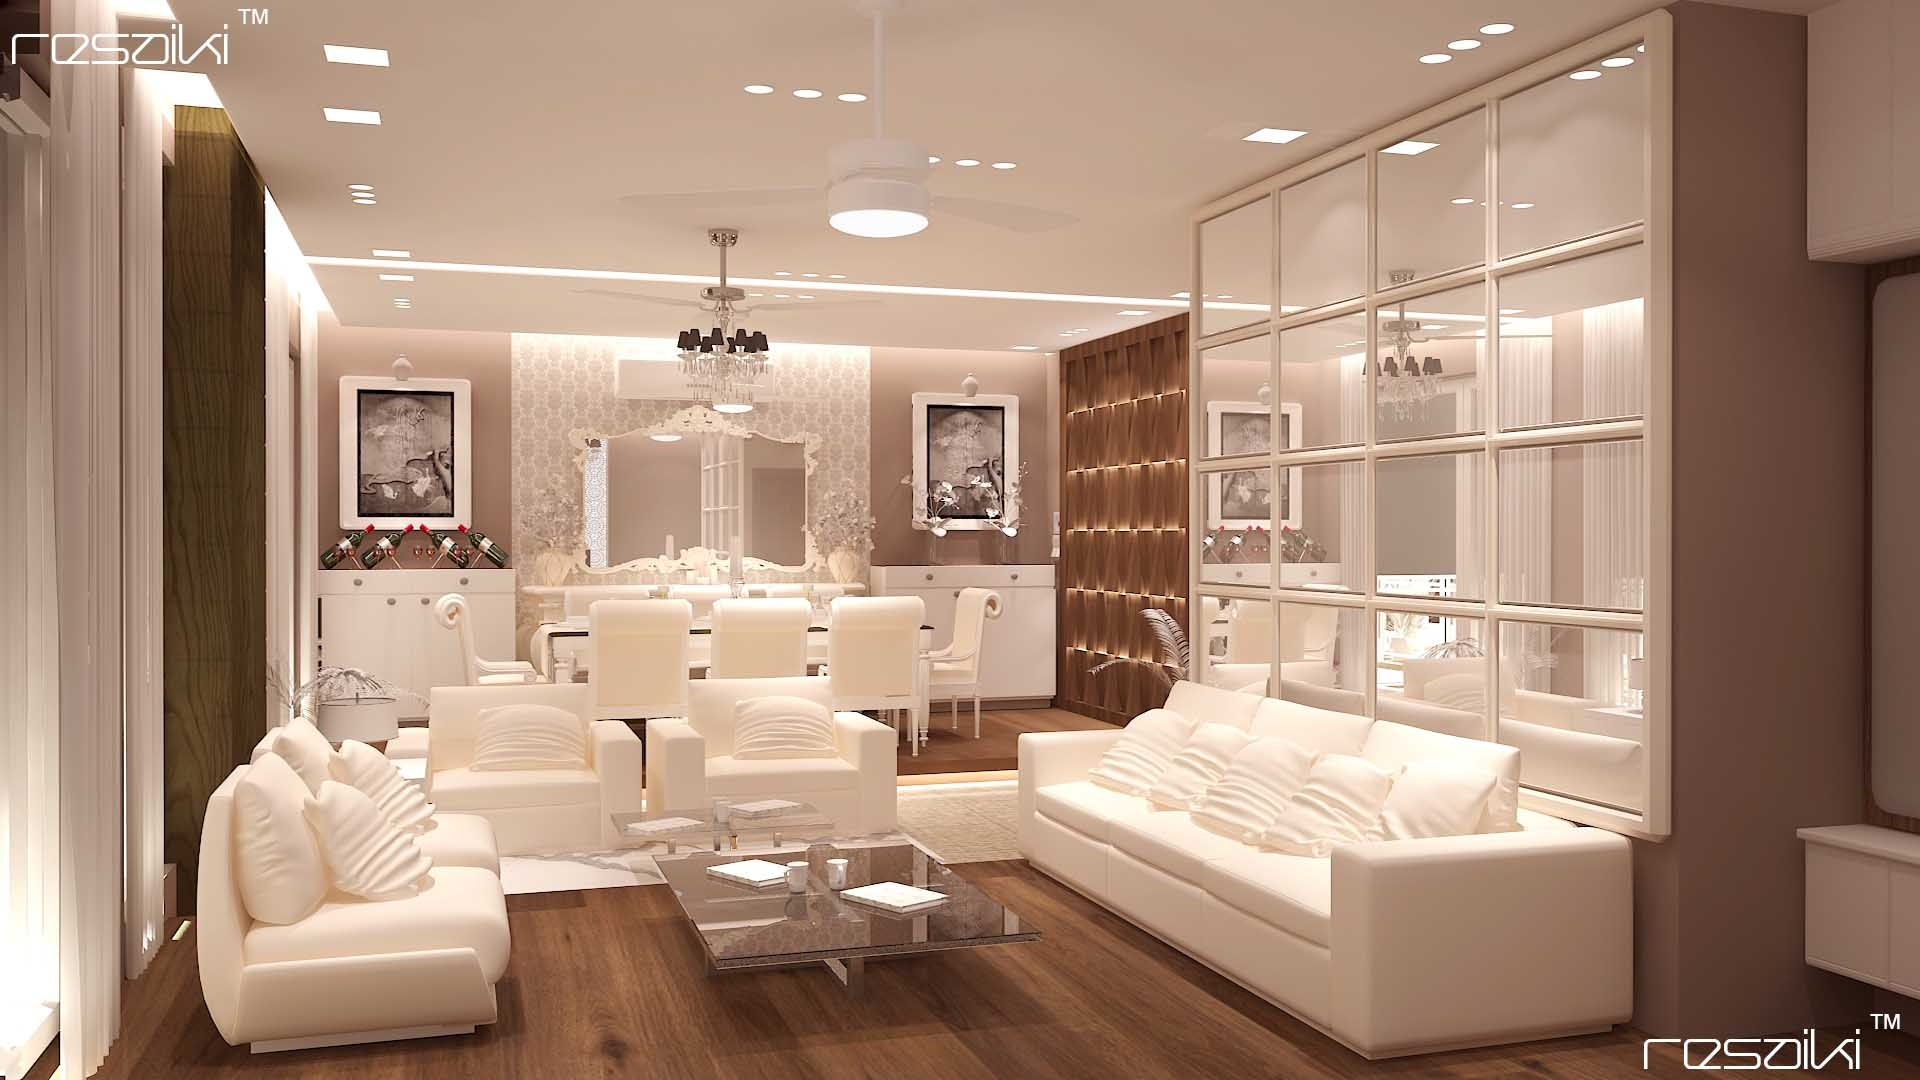 Resaiki Interiors Architecture Is One Of The Leading Interior